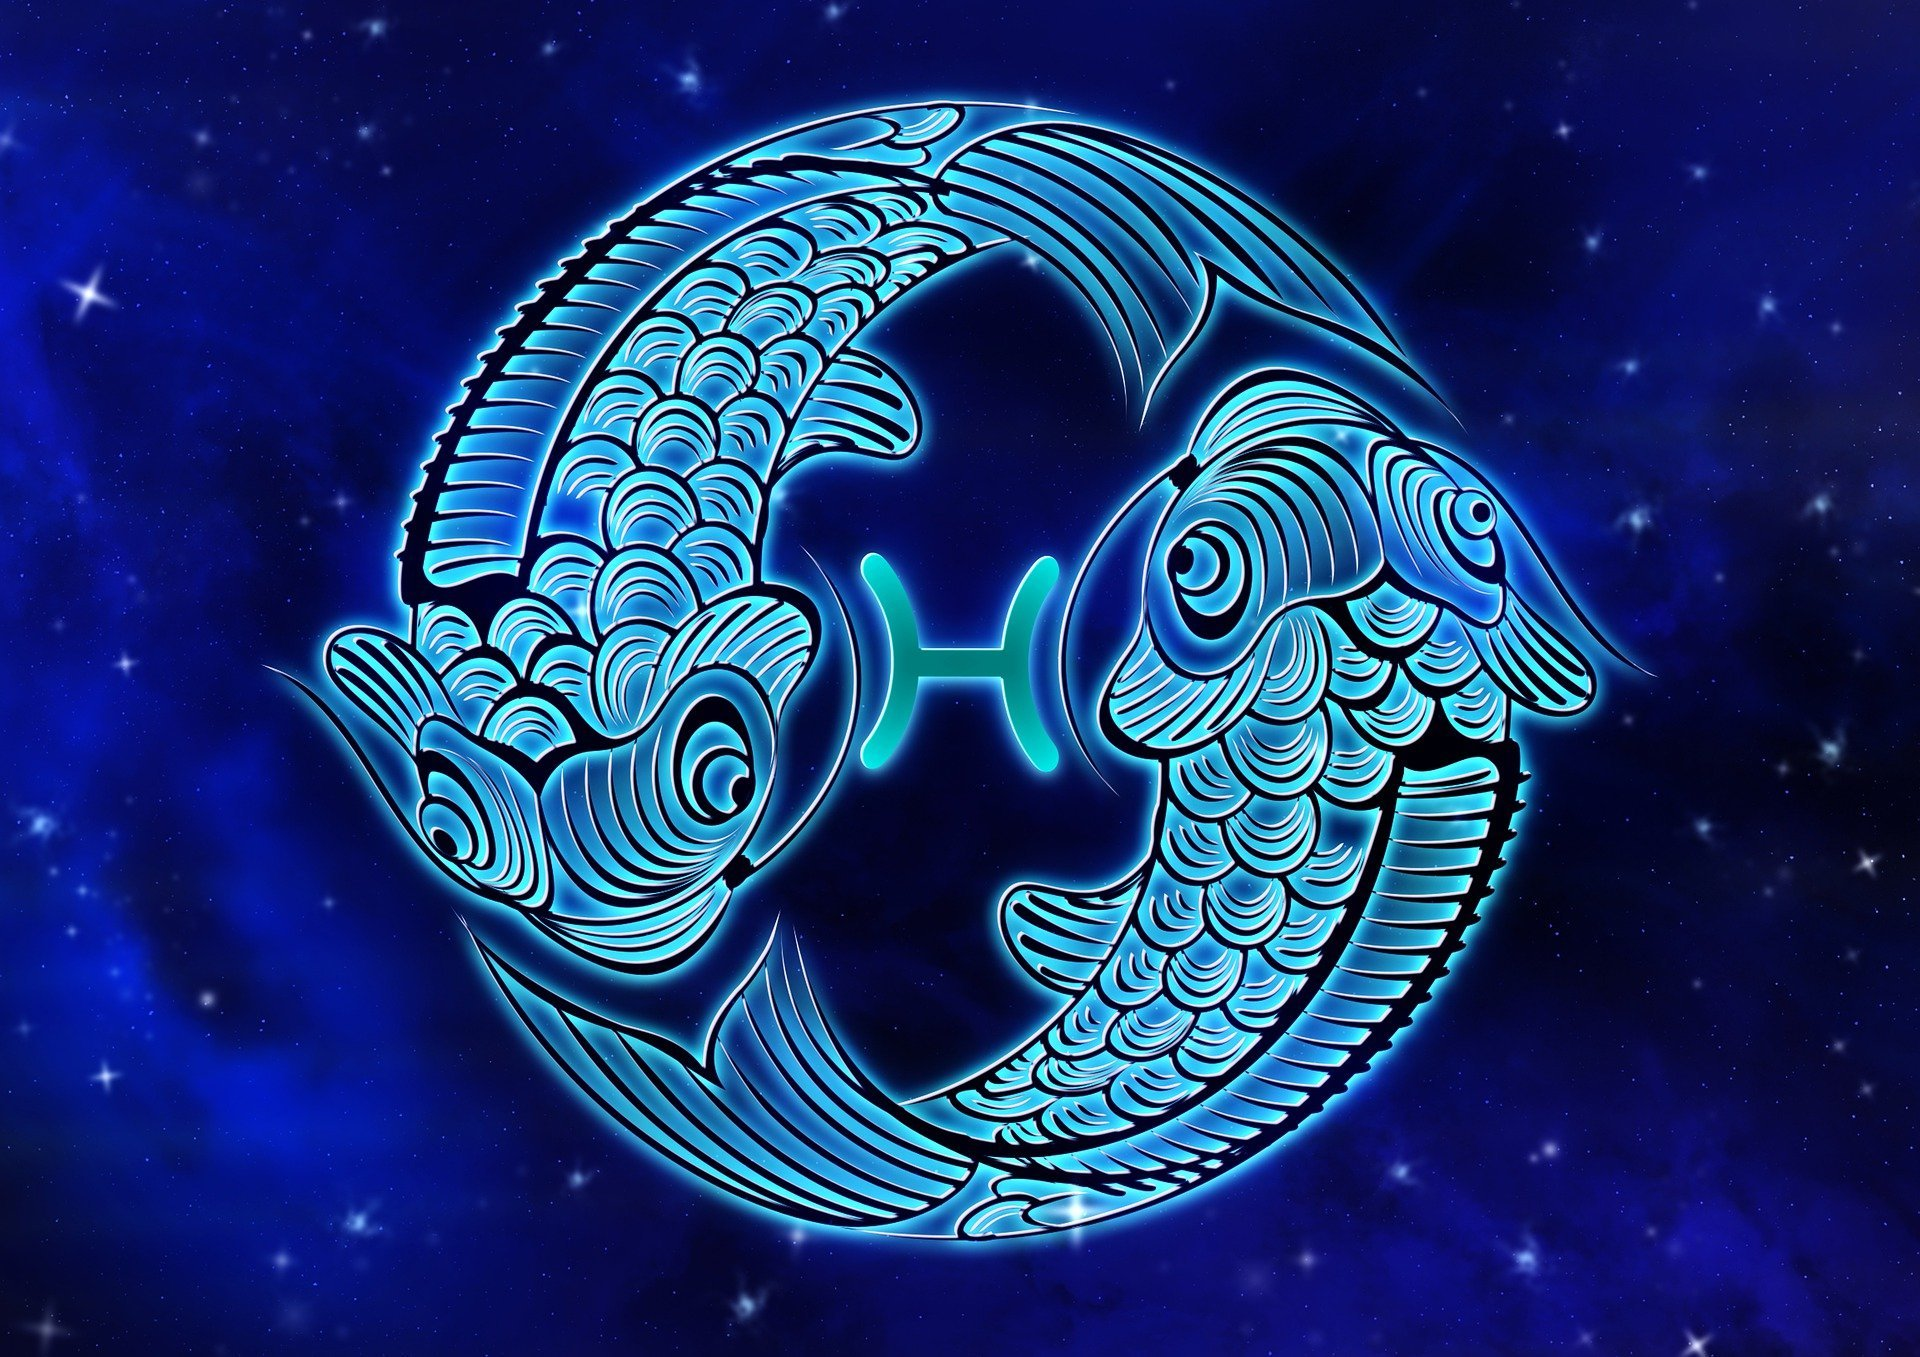 Pictured - A depiction of a Pisces star sign   Source: Pixabay